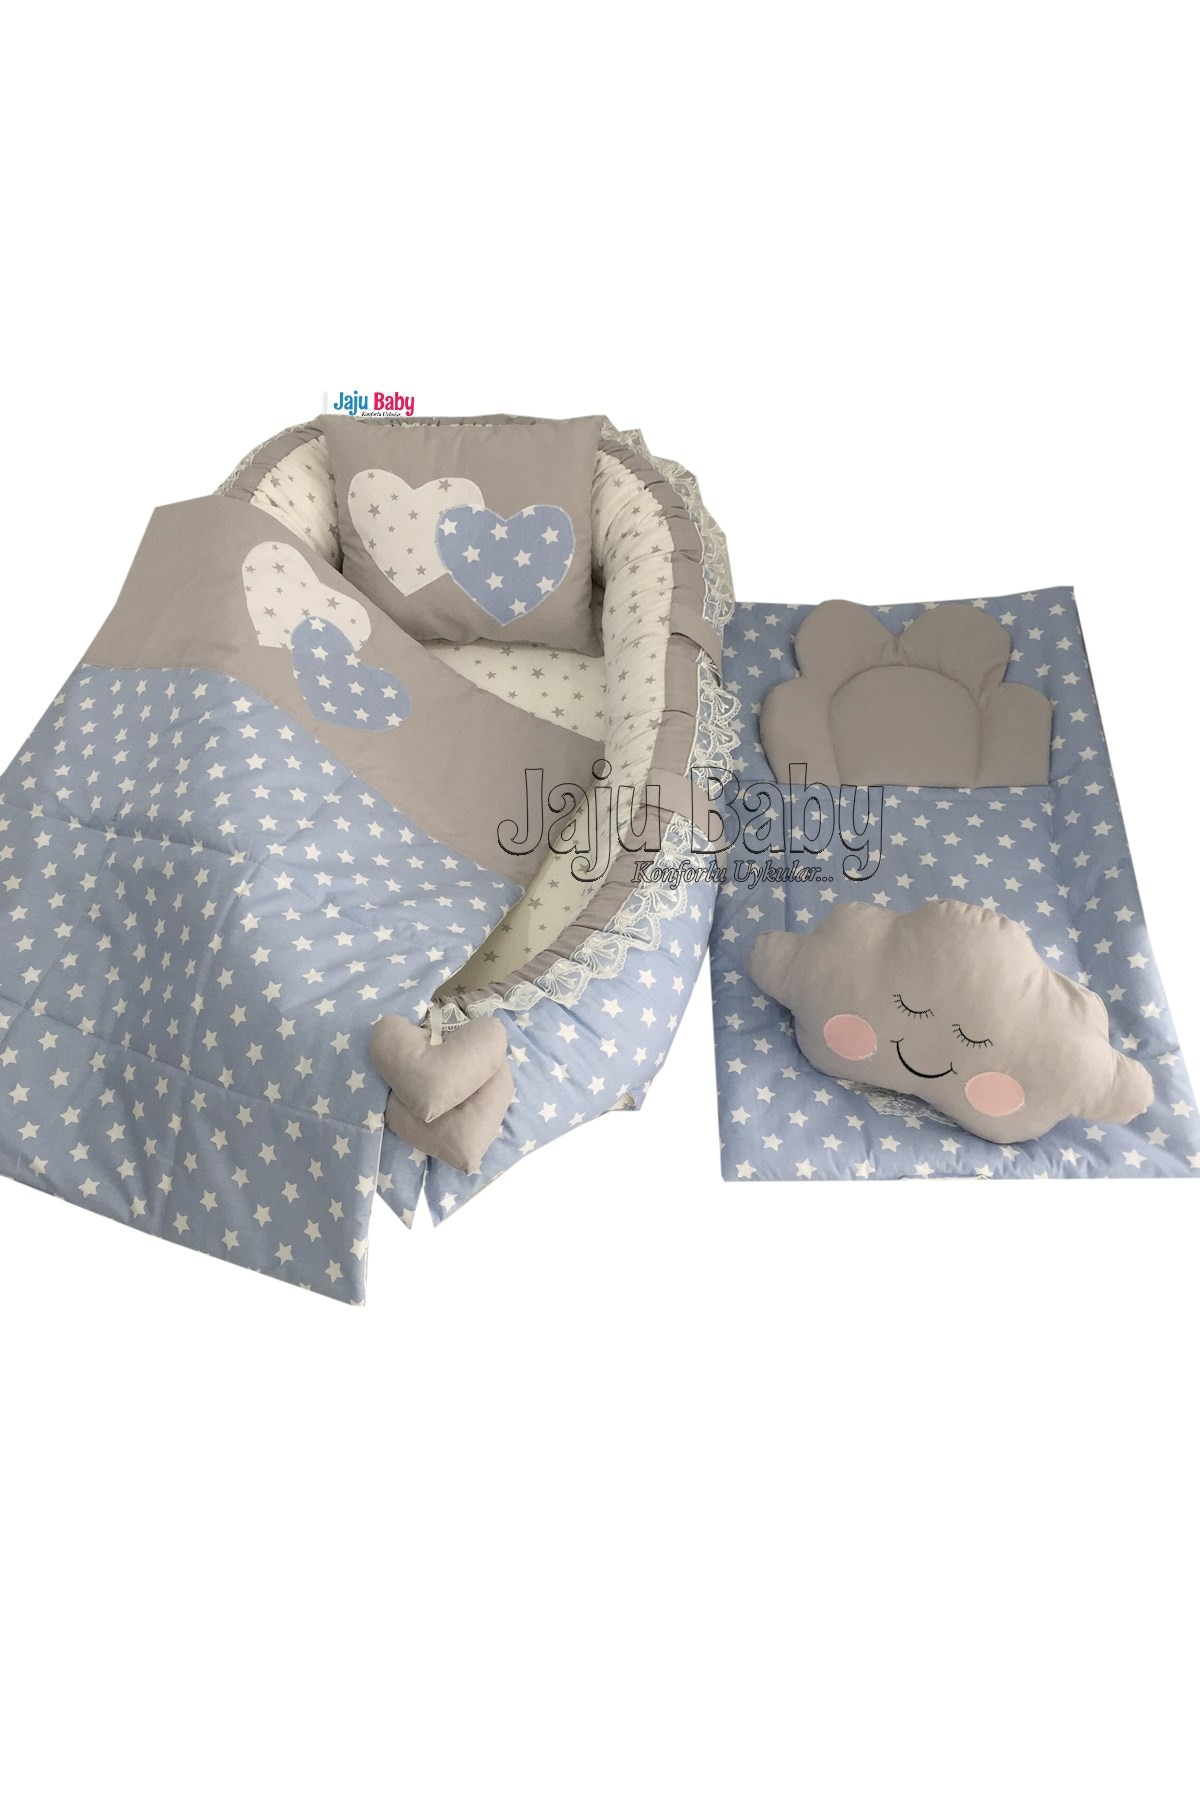 Jaju Baby Handmade, Gray and Blue Star Design Baby with Changing Mat Luxury Orthopedic Babynest Set of 5 Mother Side Baby Bed